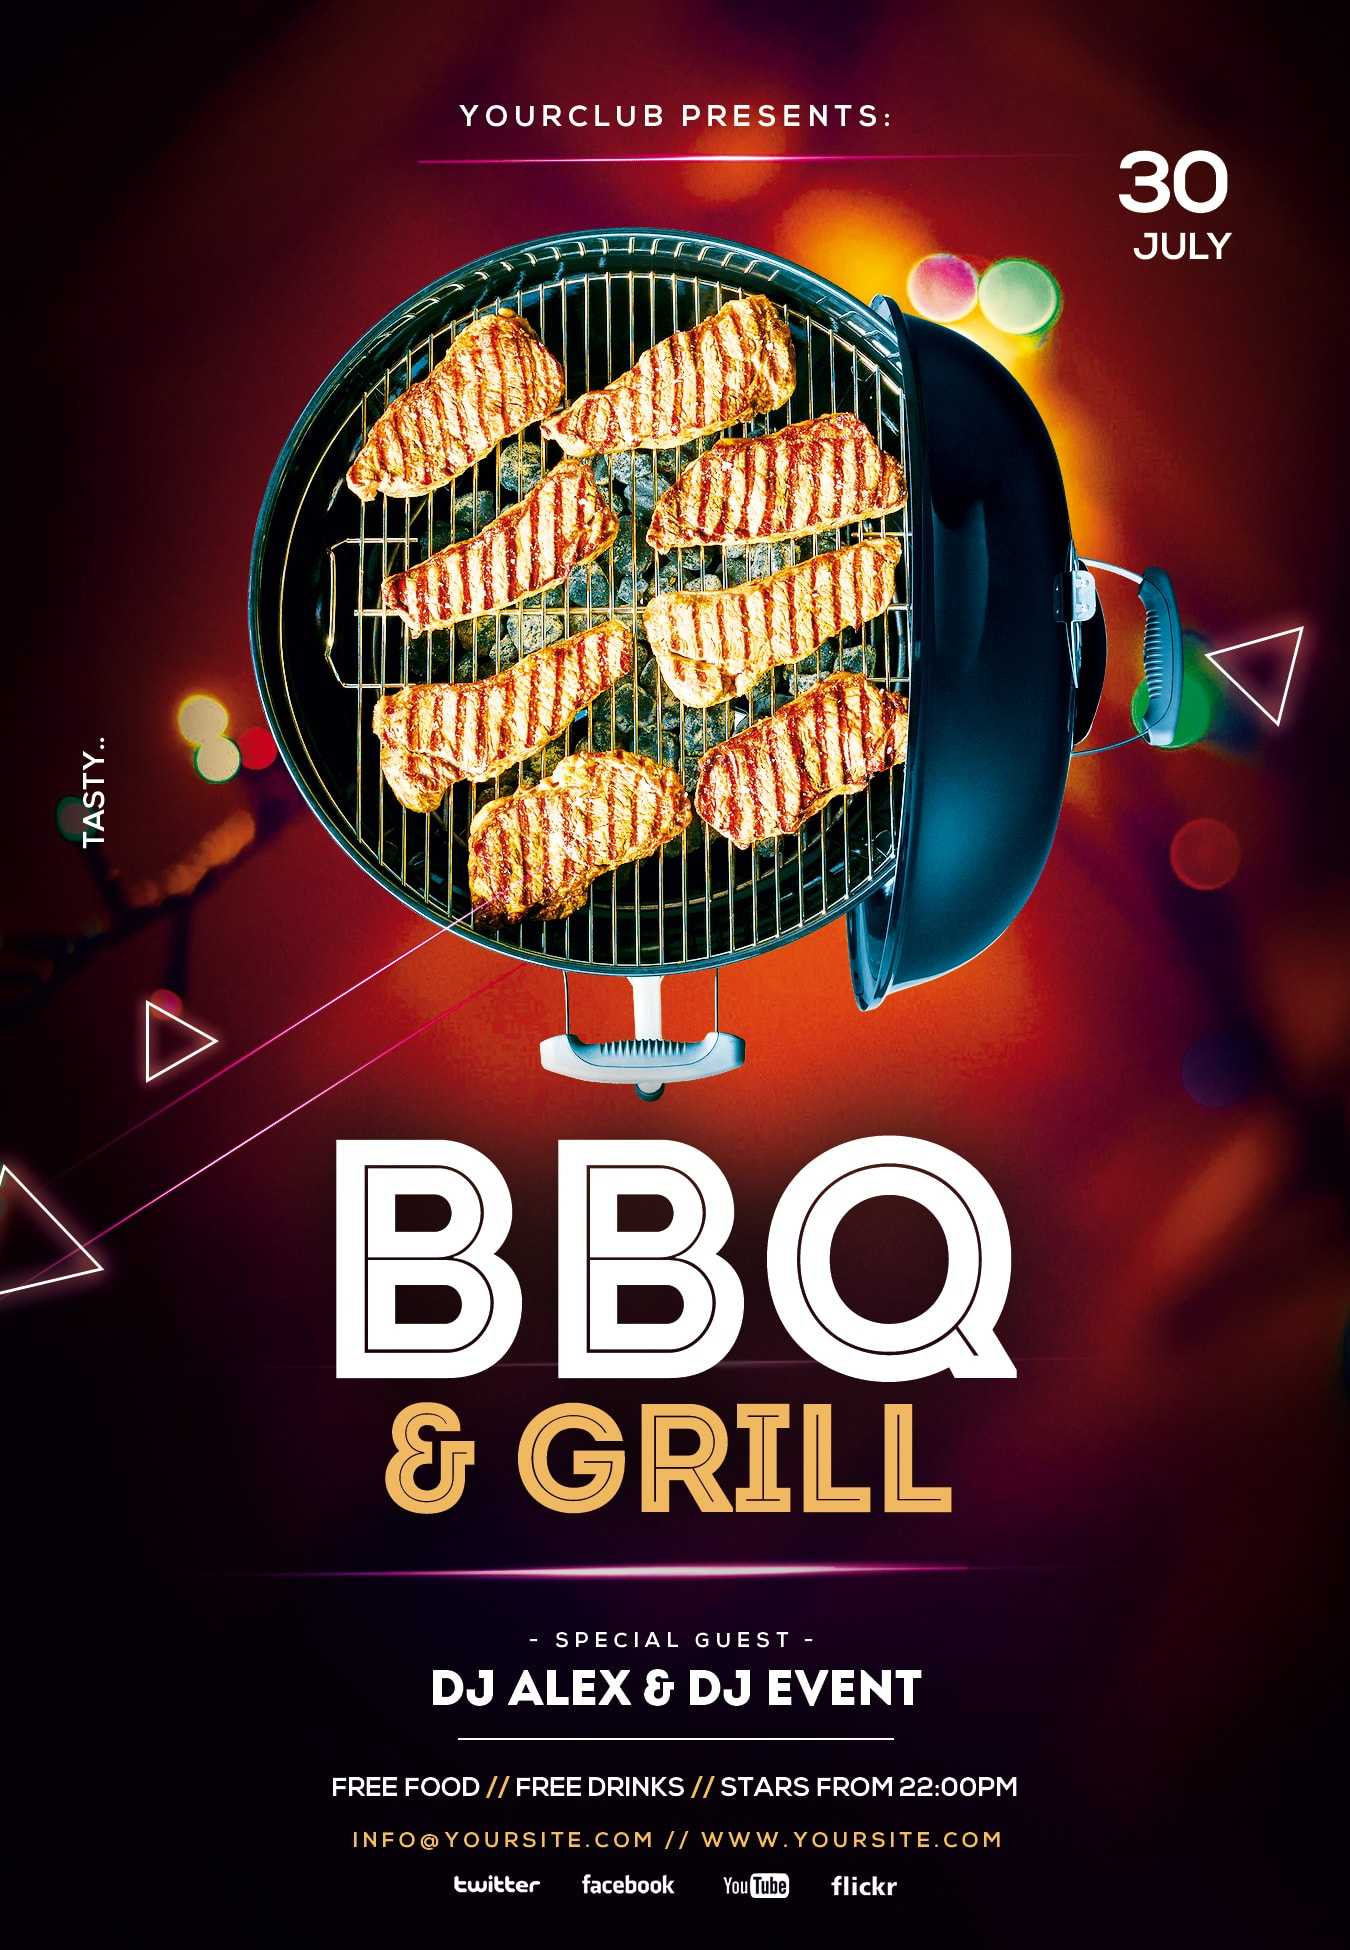 Free Bbq And Grill Psd Flyer Template - Psdflyer.co Within Free Bbq Flyer Template